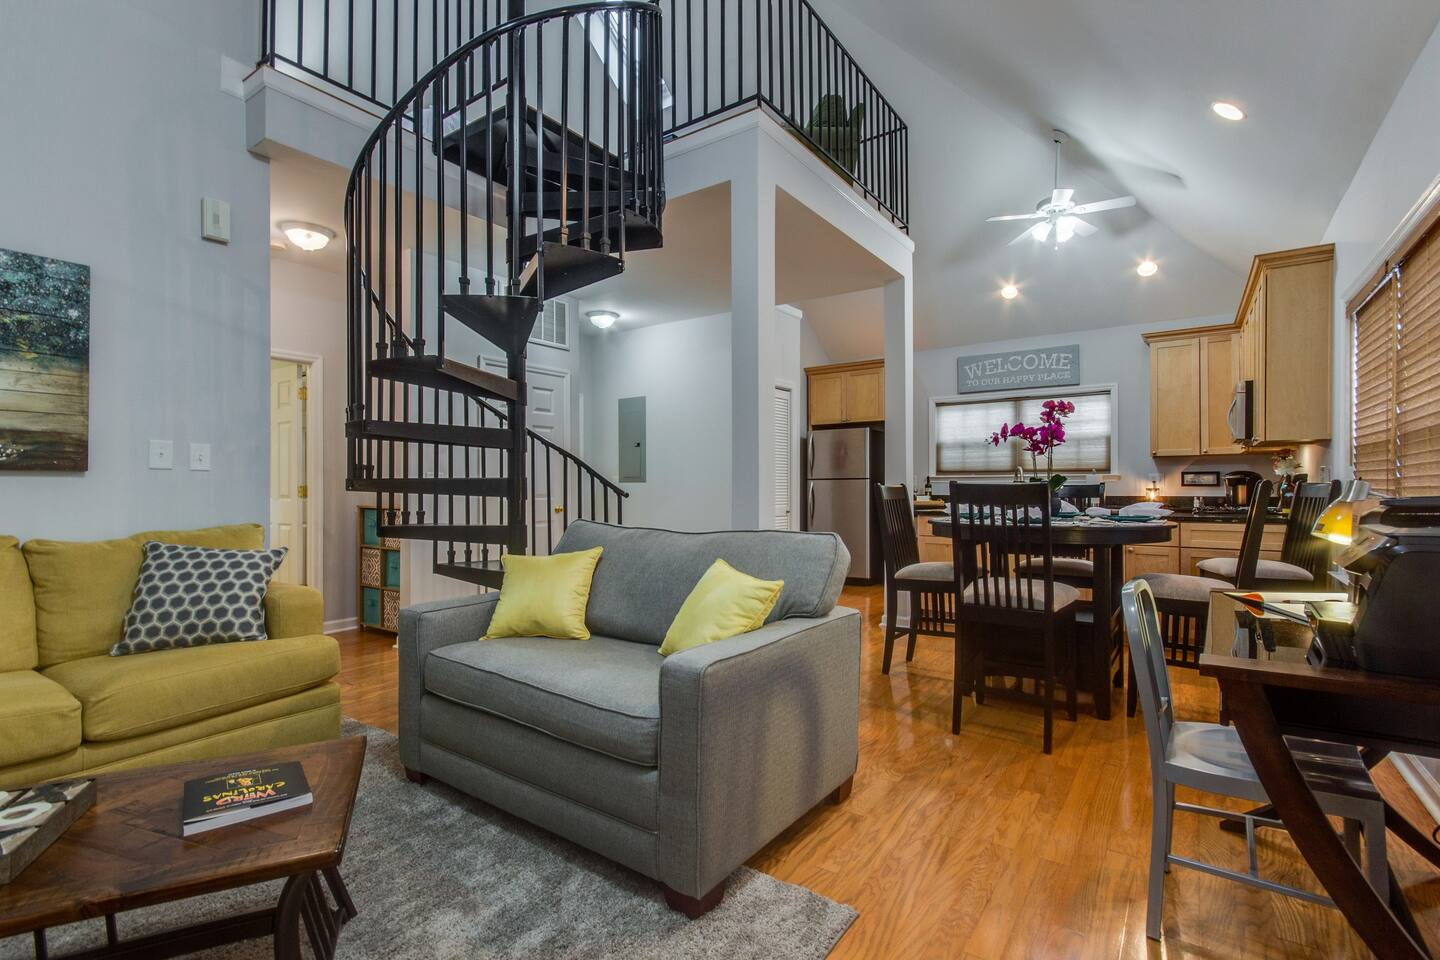 Spacious open living room with beautiful spiral staircase!